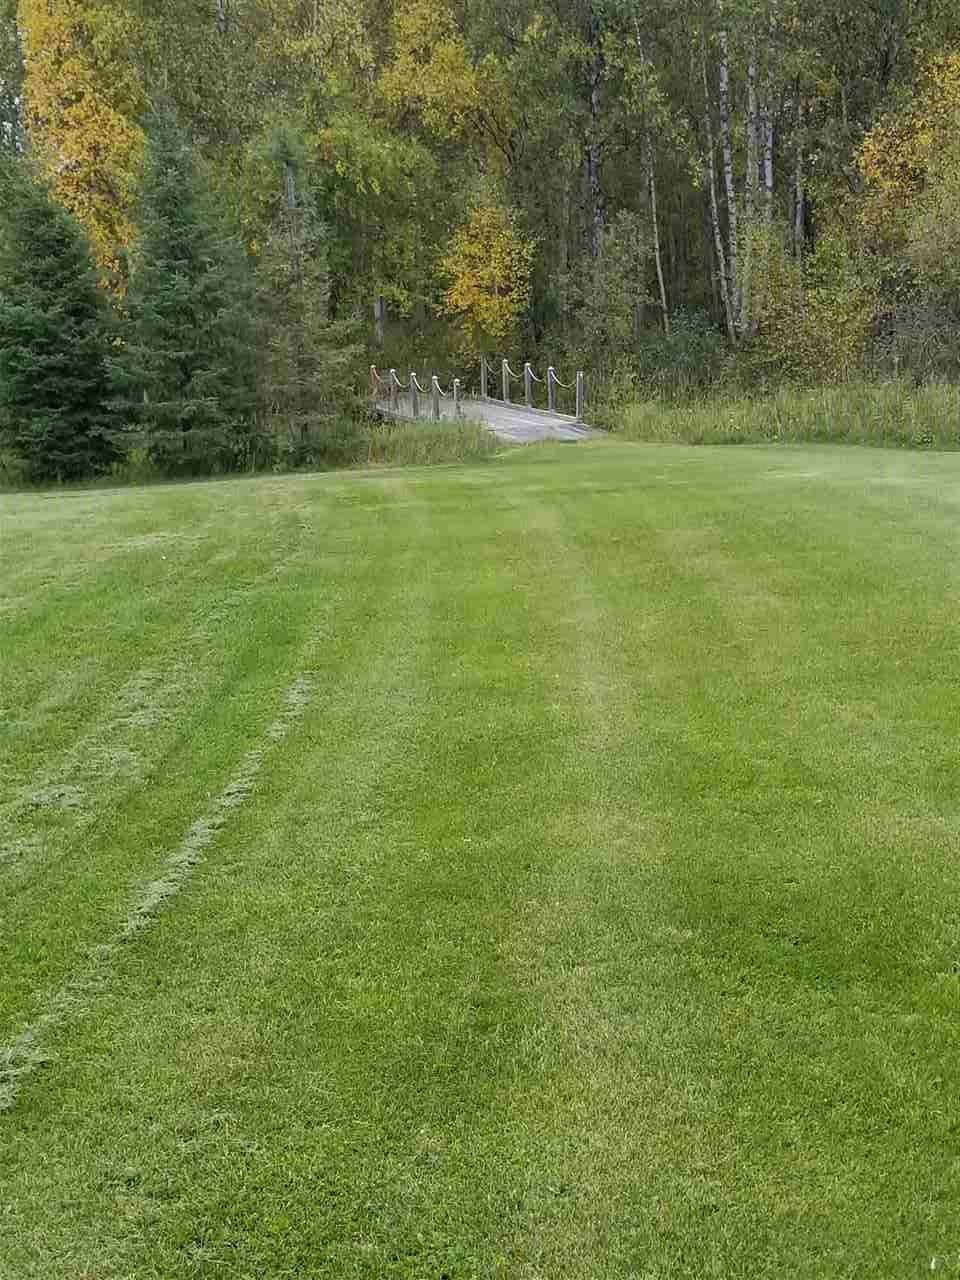 Photo 44: Photos: 462075 Rge Rd 33: Rural Wetaskiwin County House for sale : MLS®# E4229463